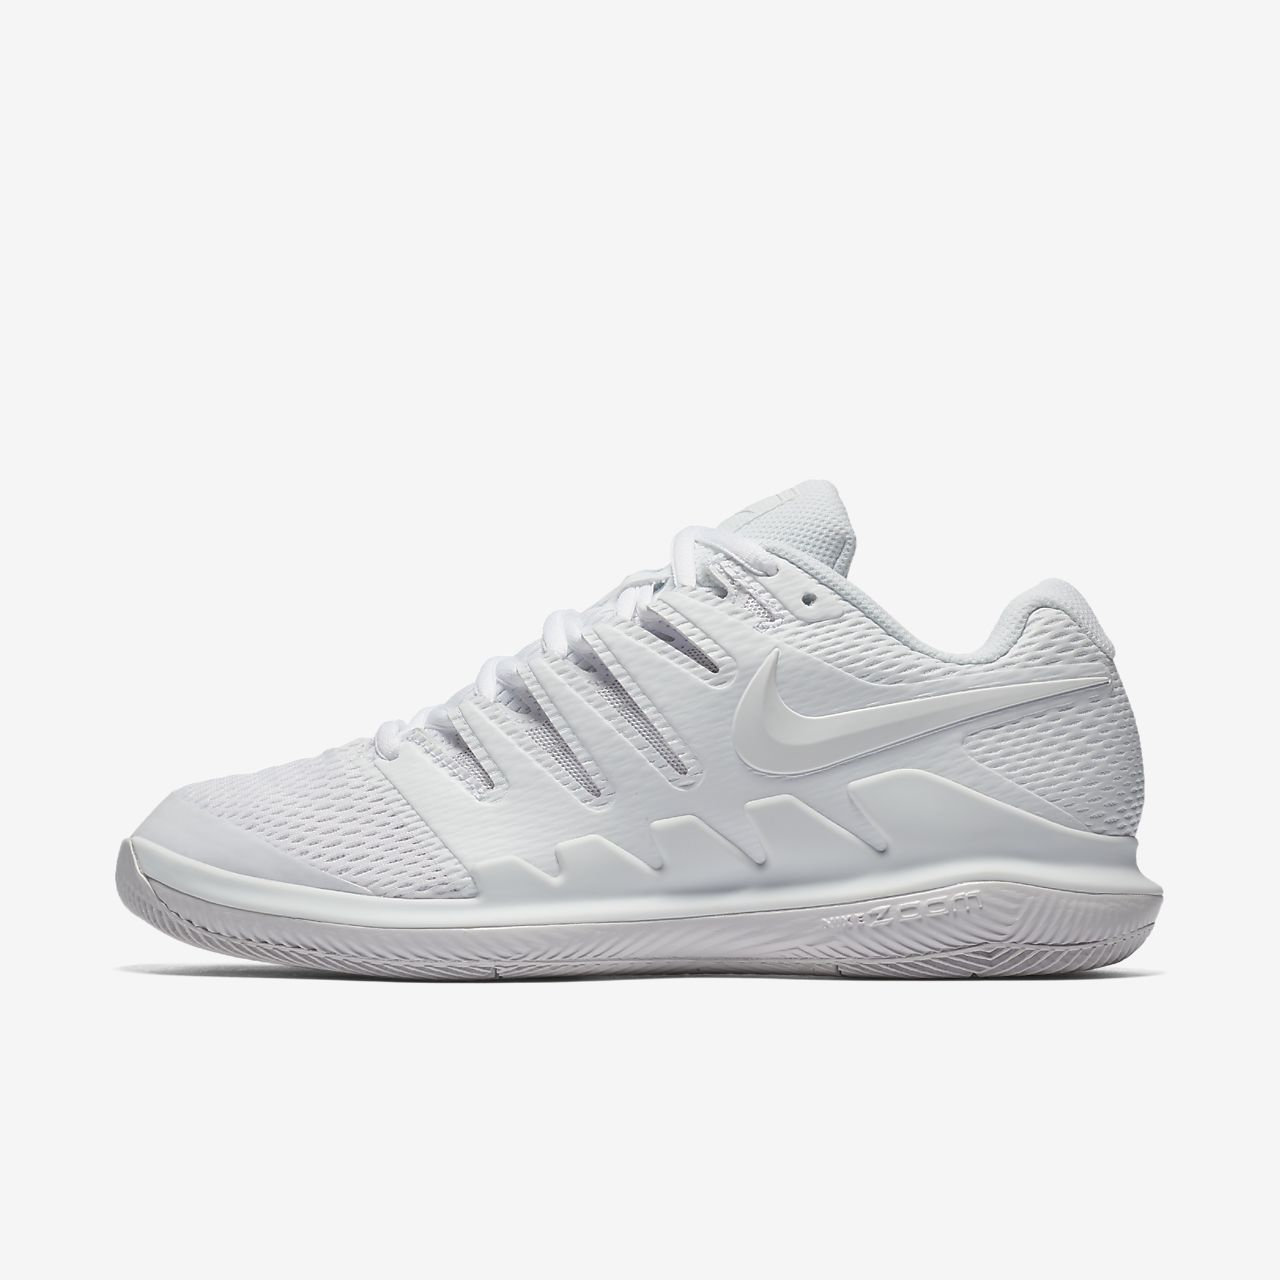 27acca241f69e NikeCourt Air Zoom Vapor X Women s Hard Court Tennis Shoe. Nike.com DK